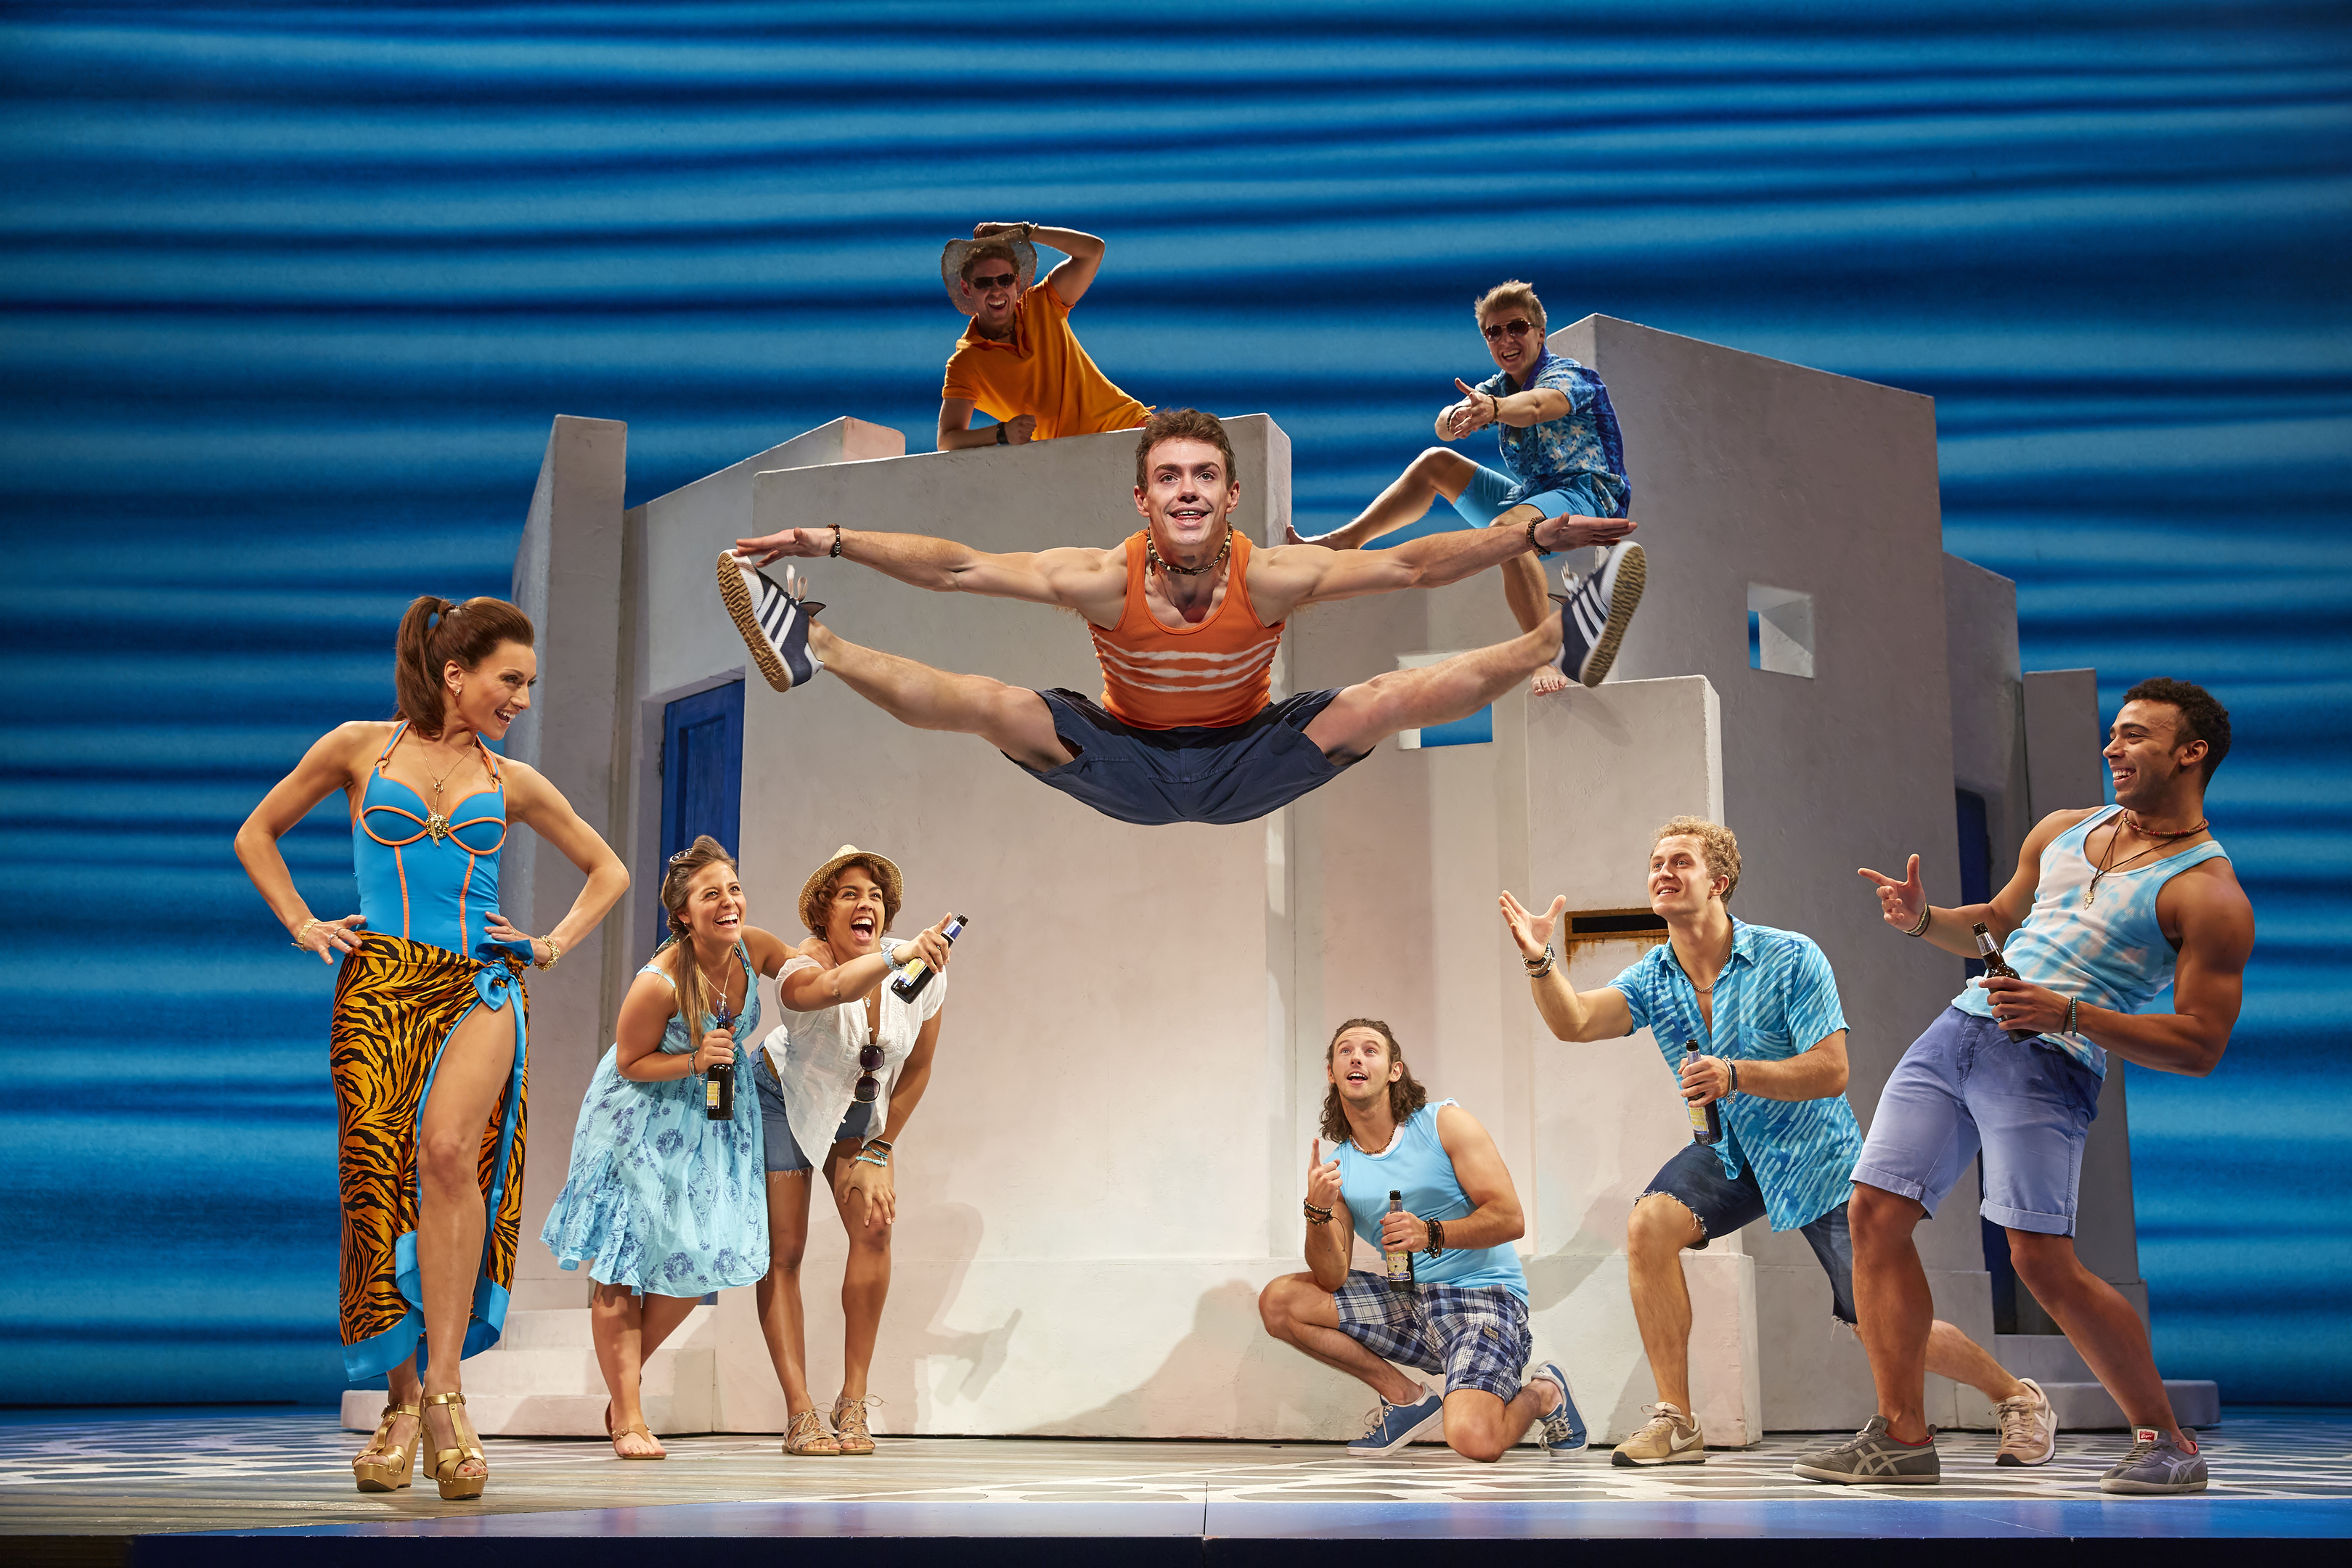 Mamma Mia is coming to His Majesty's Theatre, Aberdeeen.